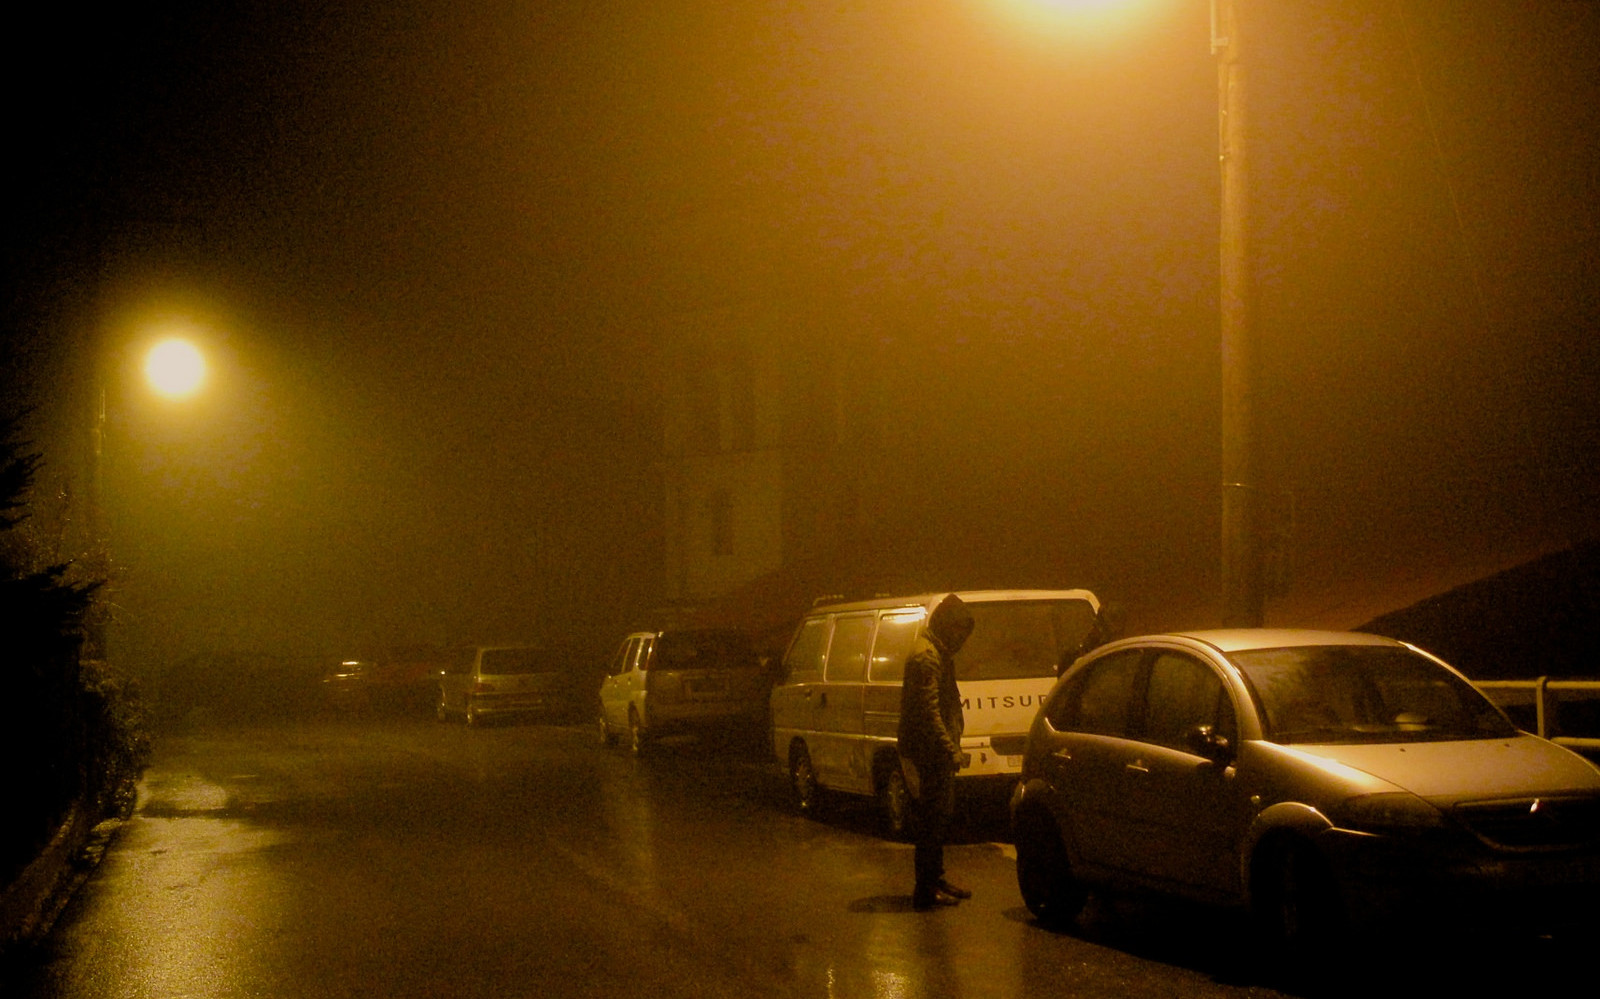 Image: A foggy/rainy city street with hooded individuals around a car.